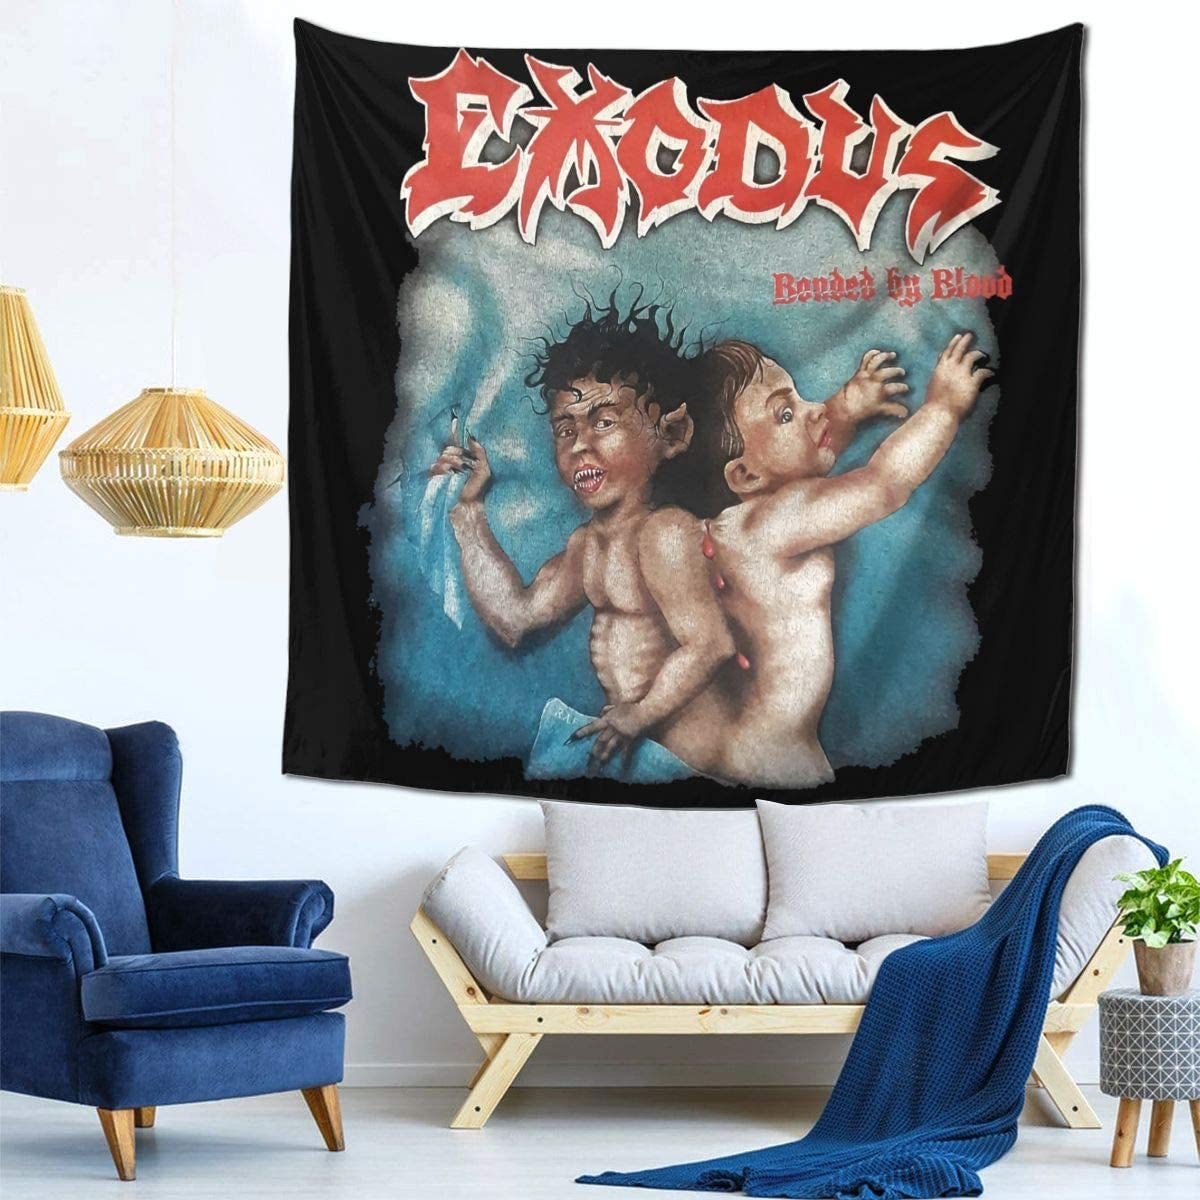 AsziSham Exodus Bonded by Blood Tapestry Wall Hanging Tapestries for Room 59 X 59 in